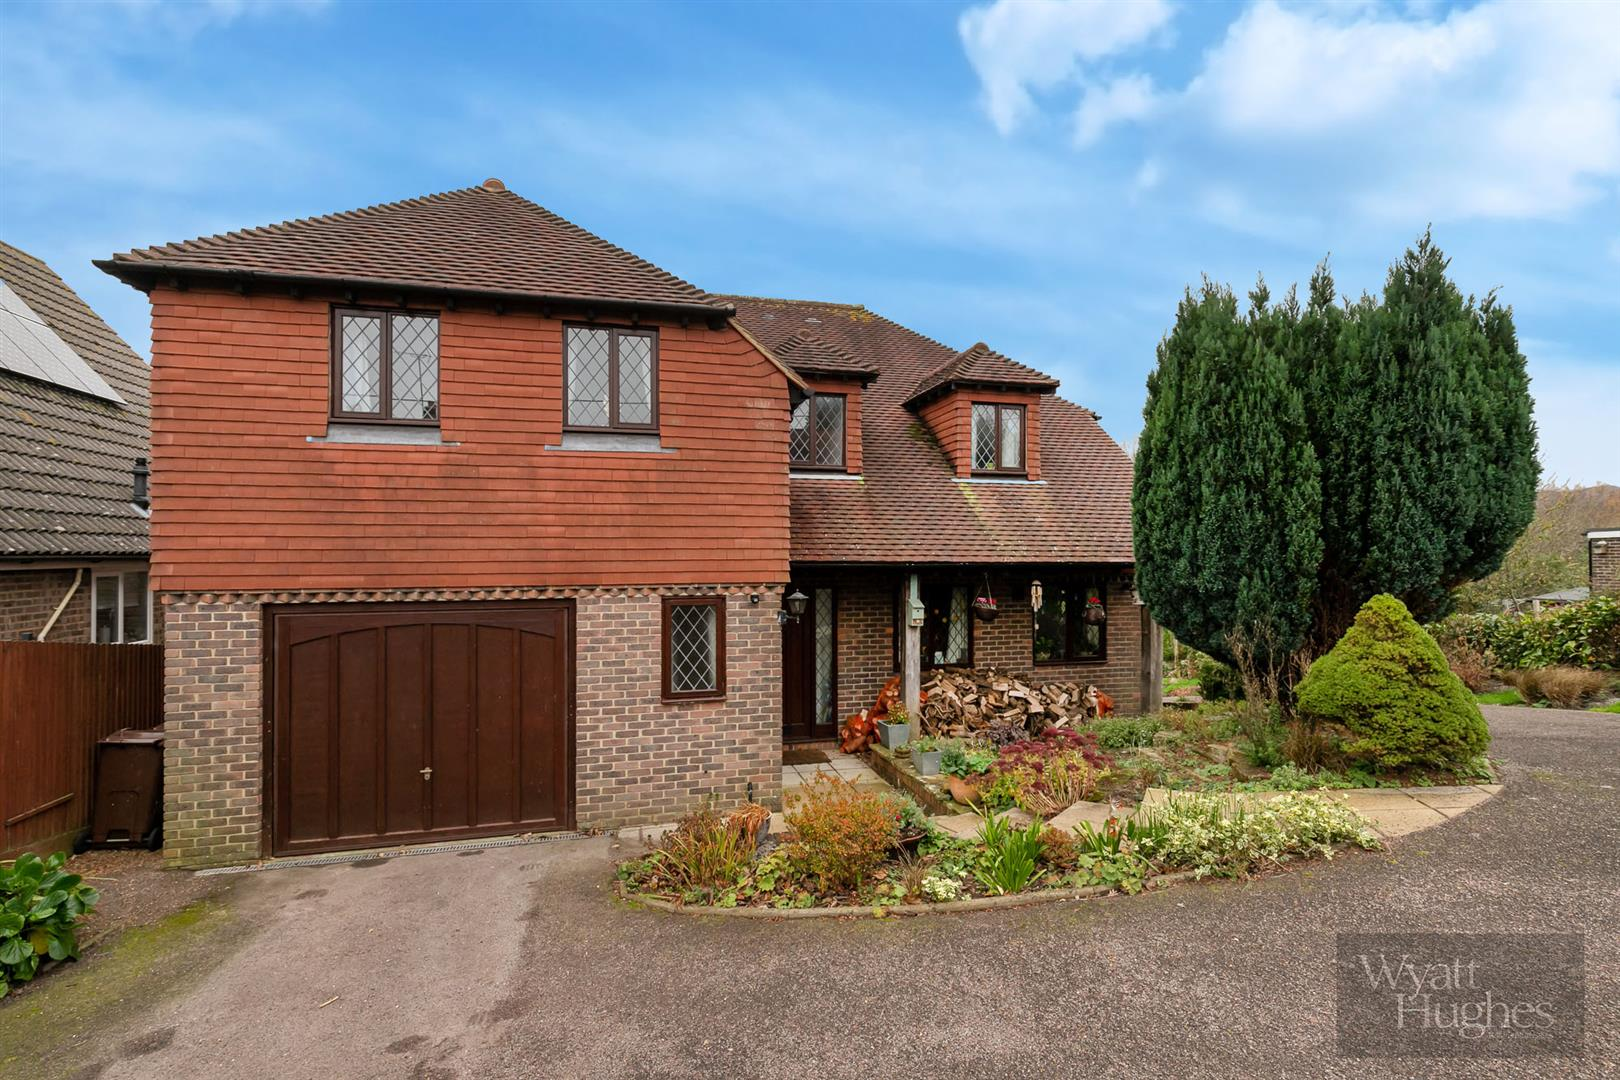 4 bed detached-house for sale in Pett Road, Hastings, TN35